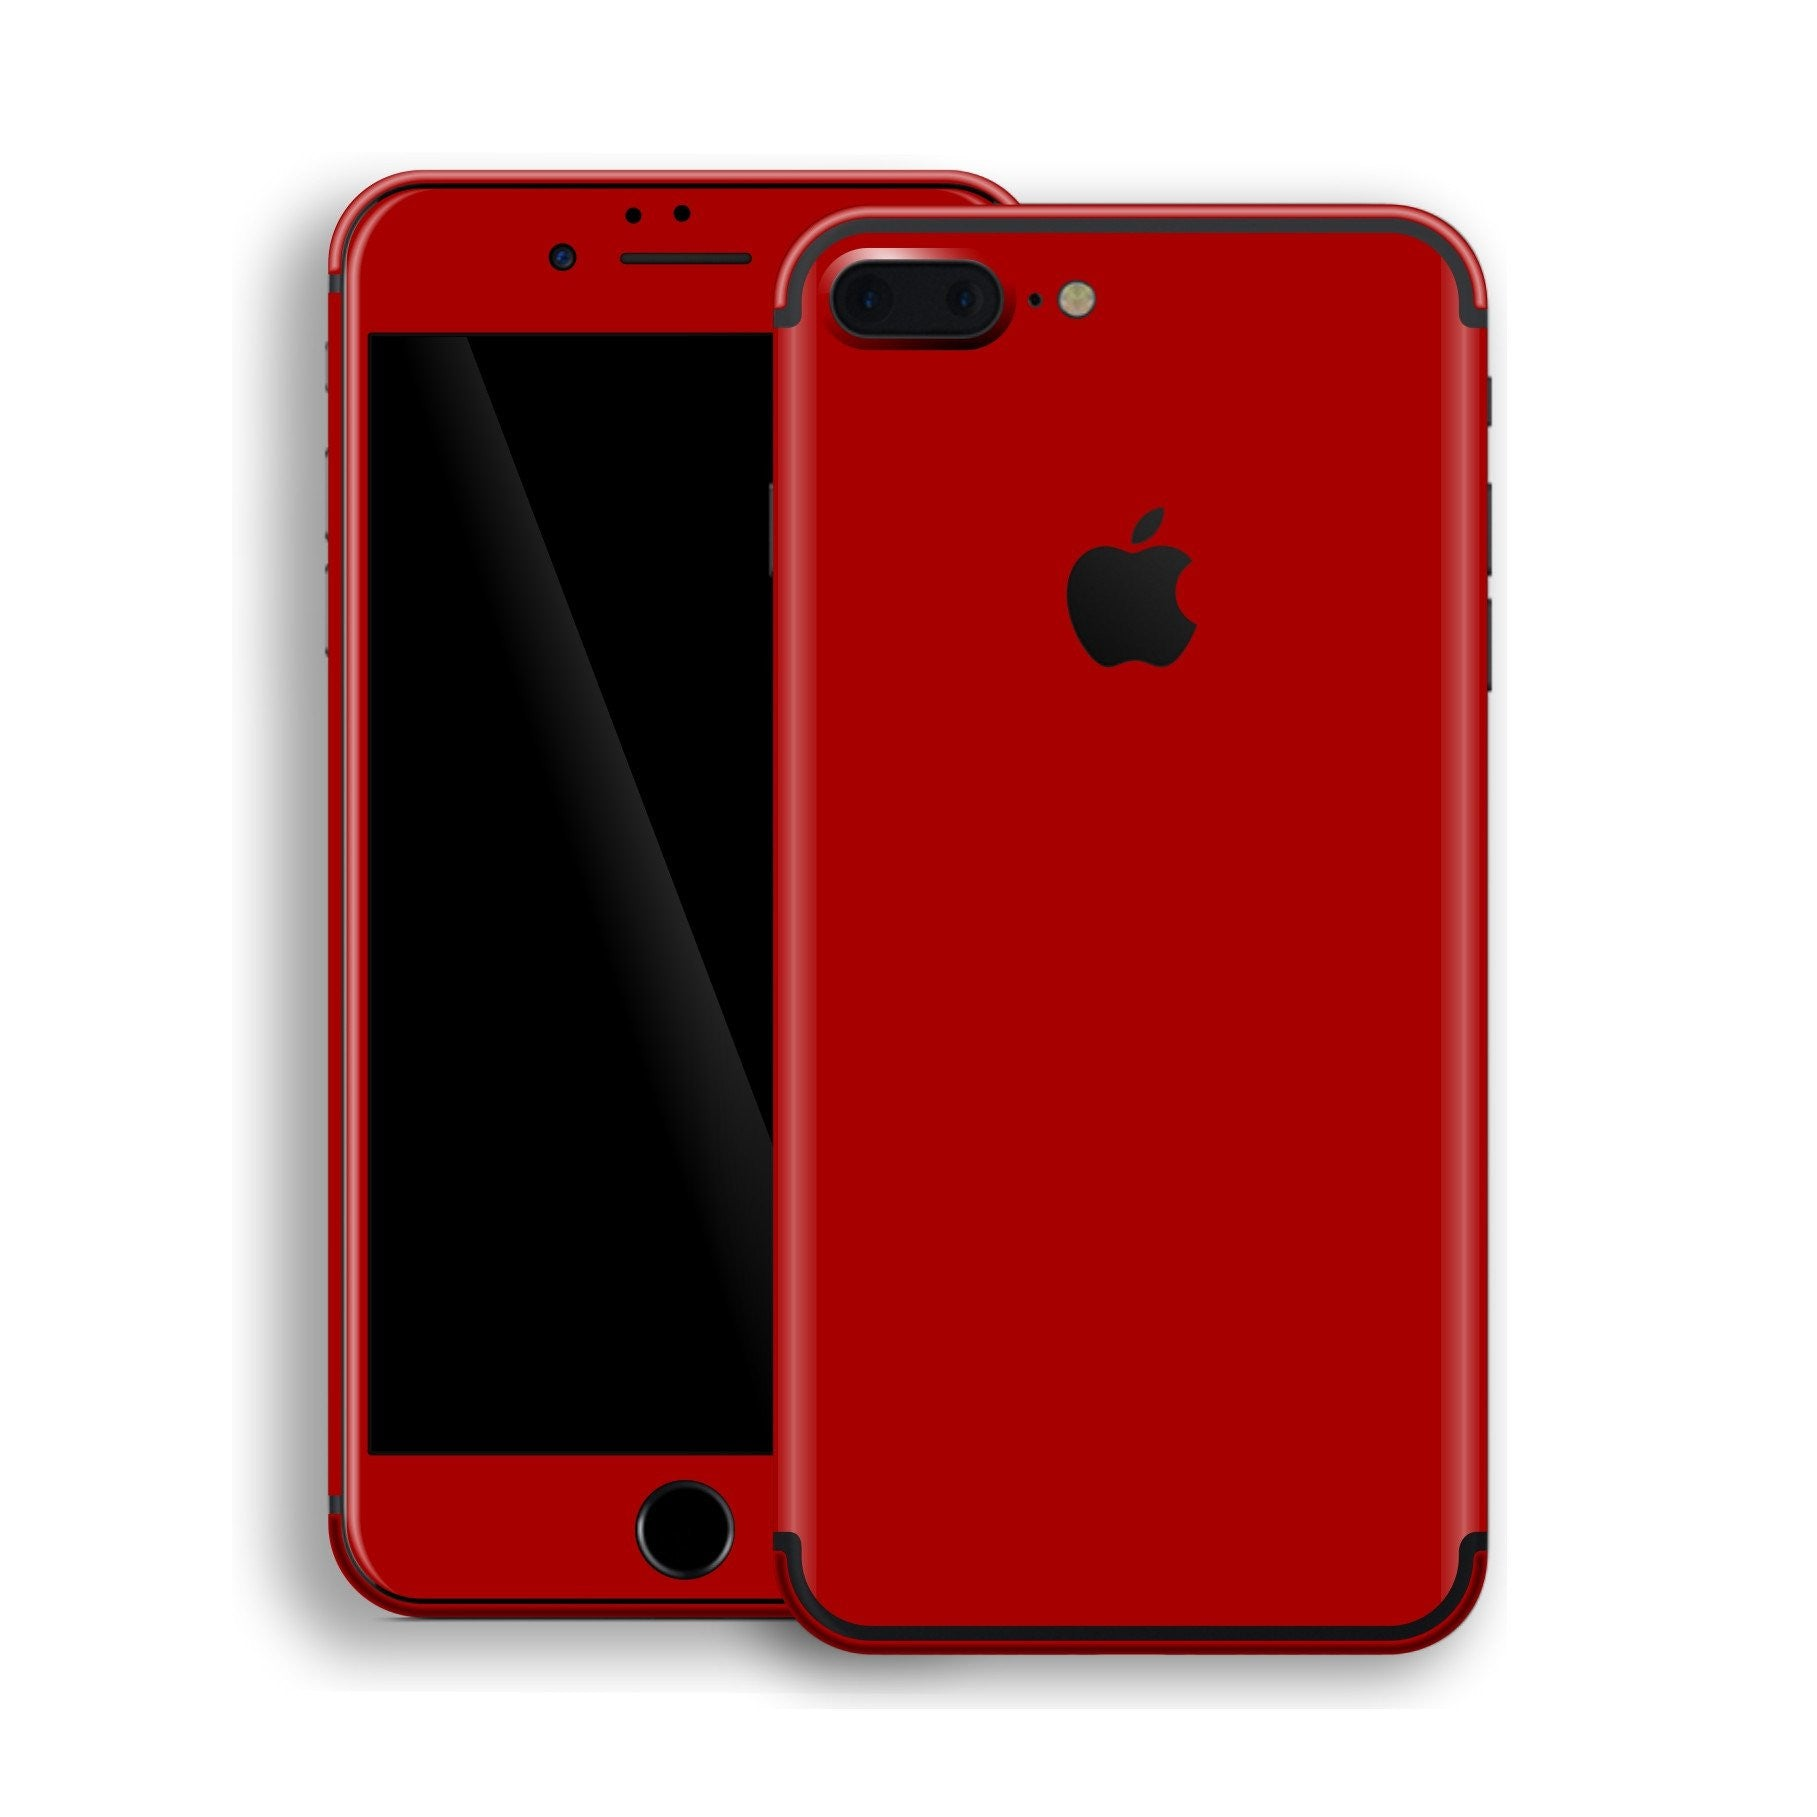 iPhone 7 Plus Deep Red Glossy Gloss Finish Skin, Decal, Wrap, Protector, Cover by EasySkinz | EasySkinz.com